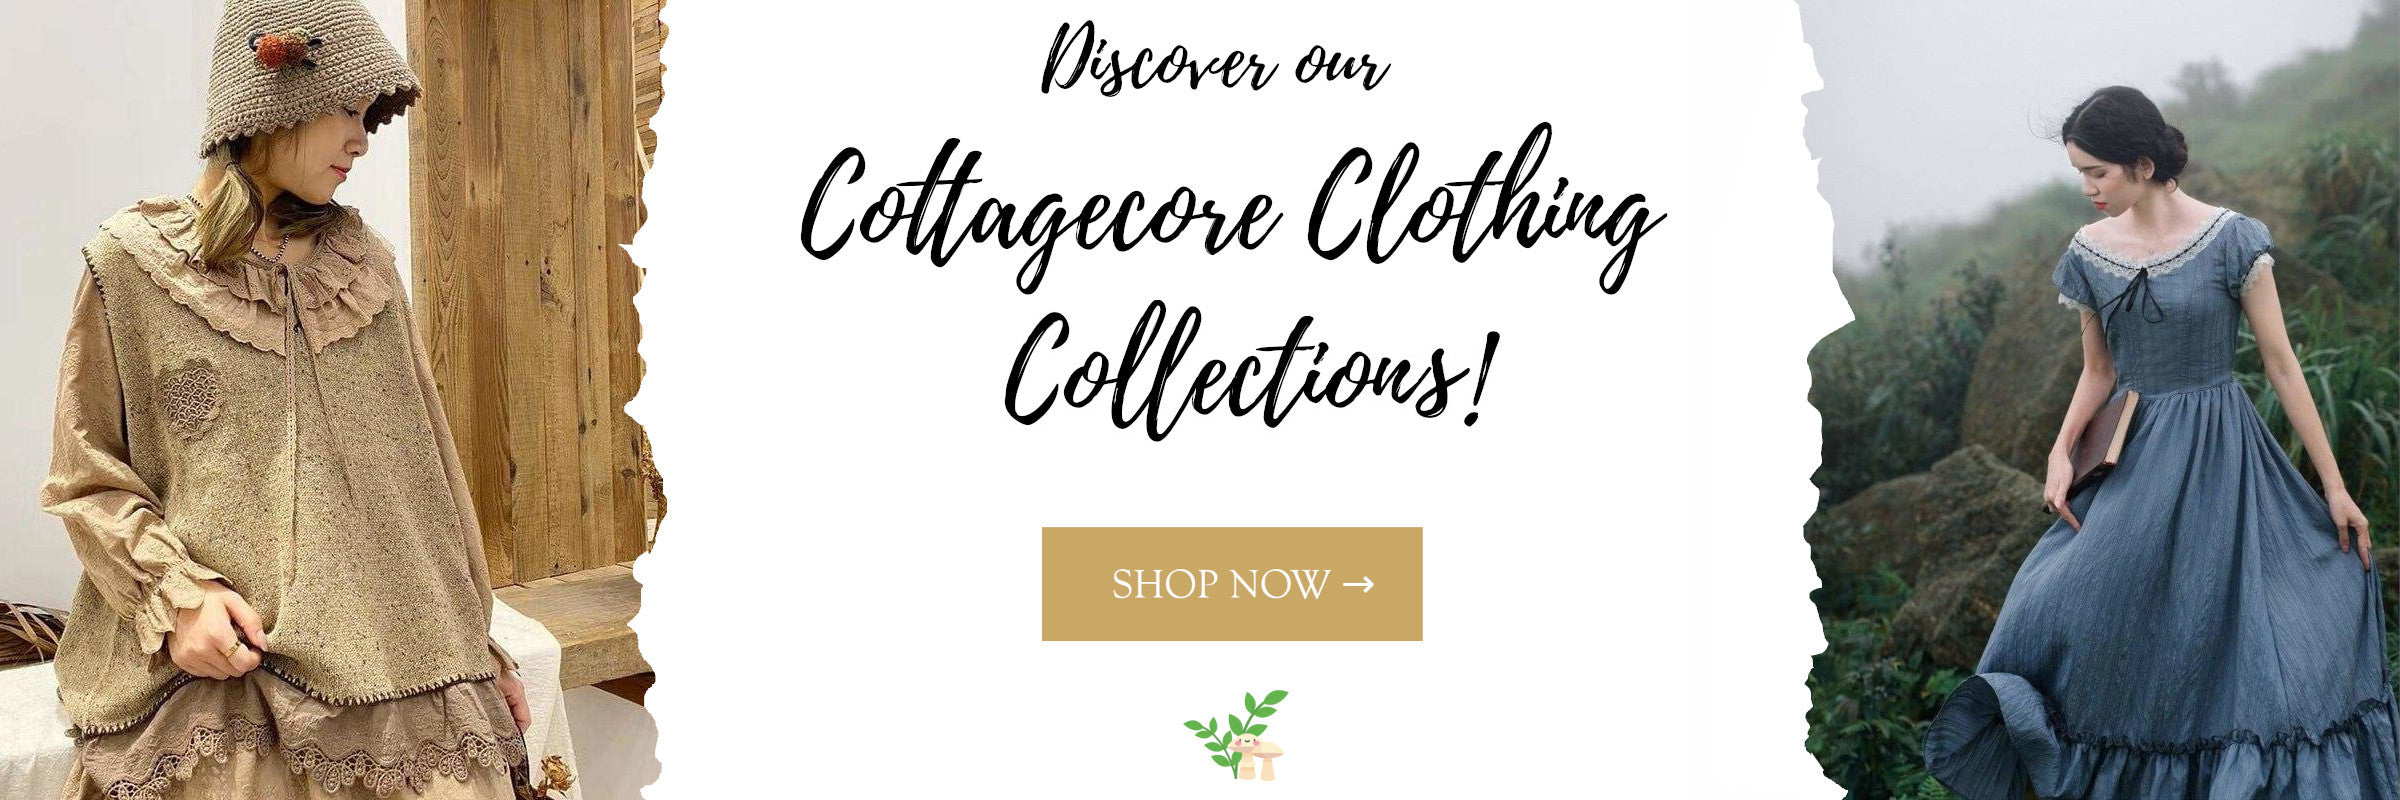 cottagecore outfits